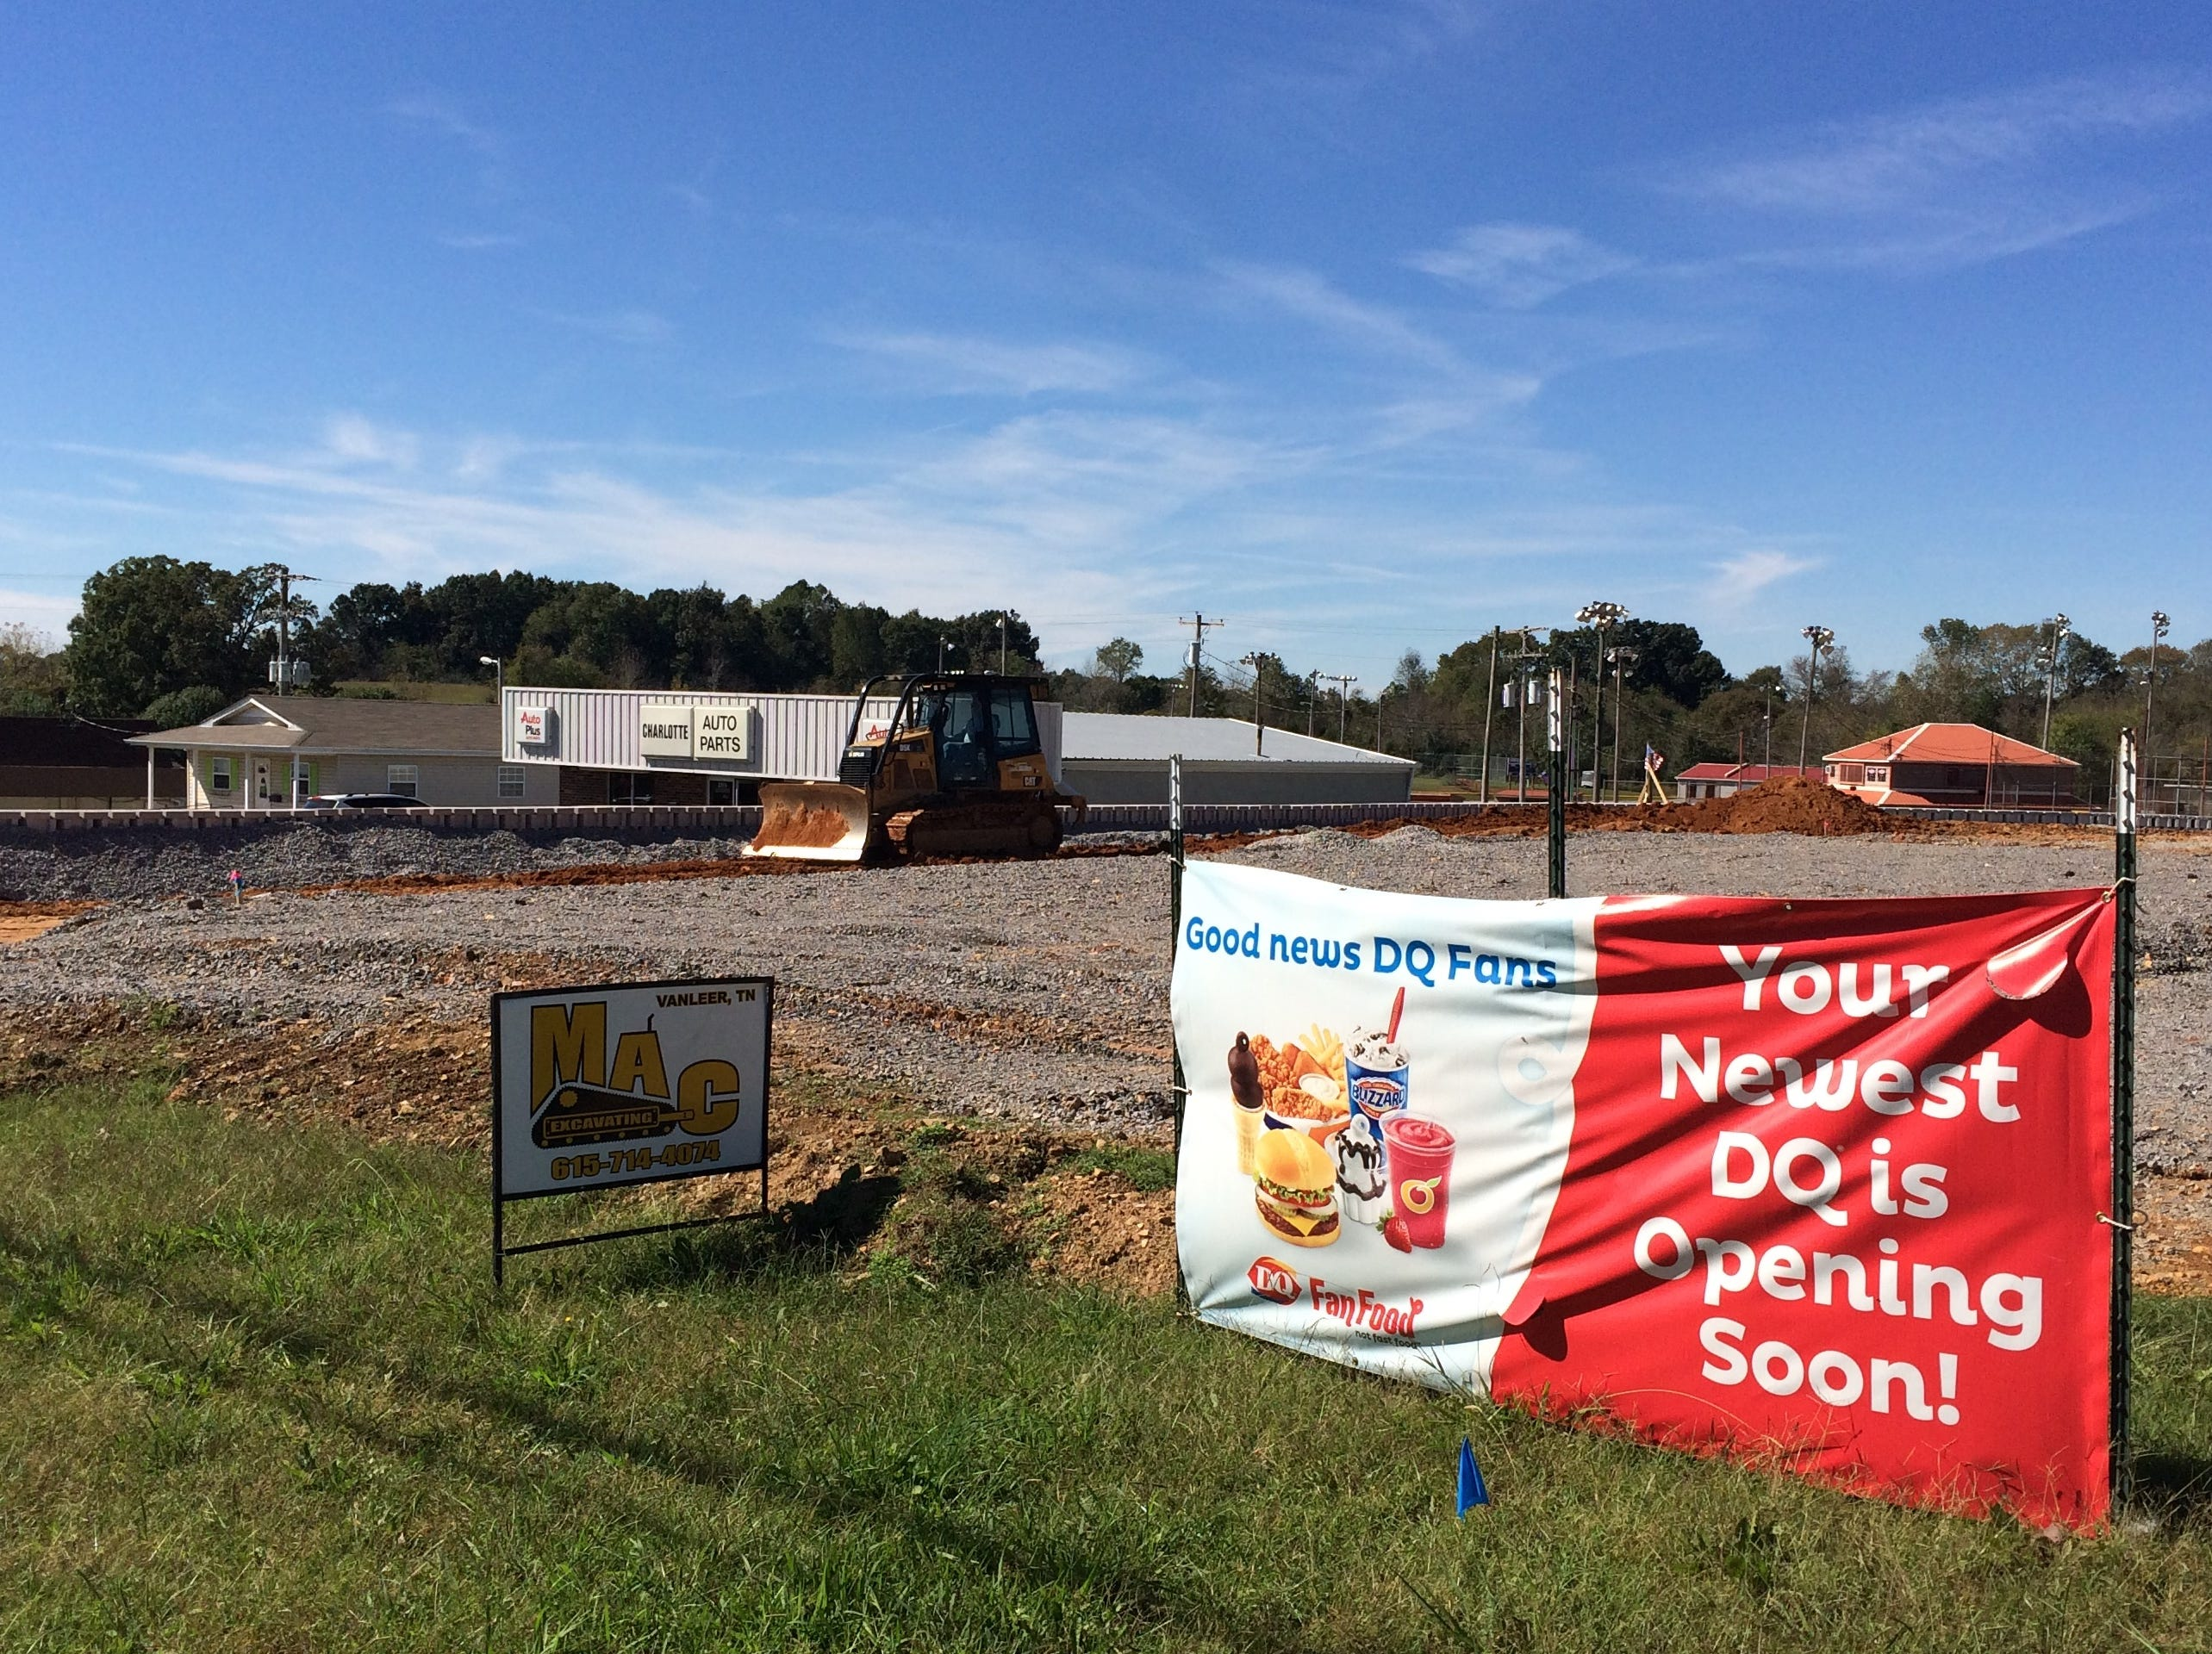 Charlotte Dairy Queen: 12 years in making, February open planned